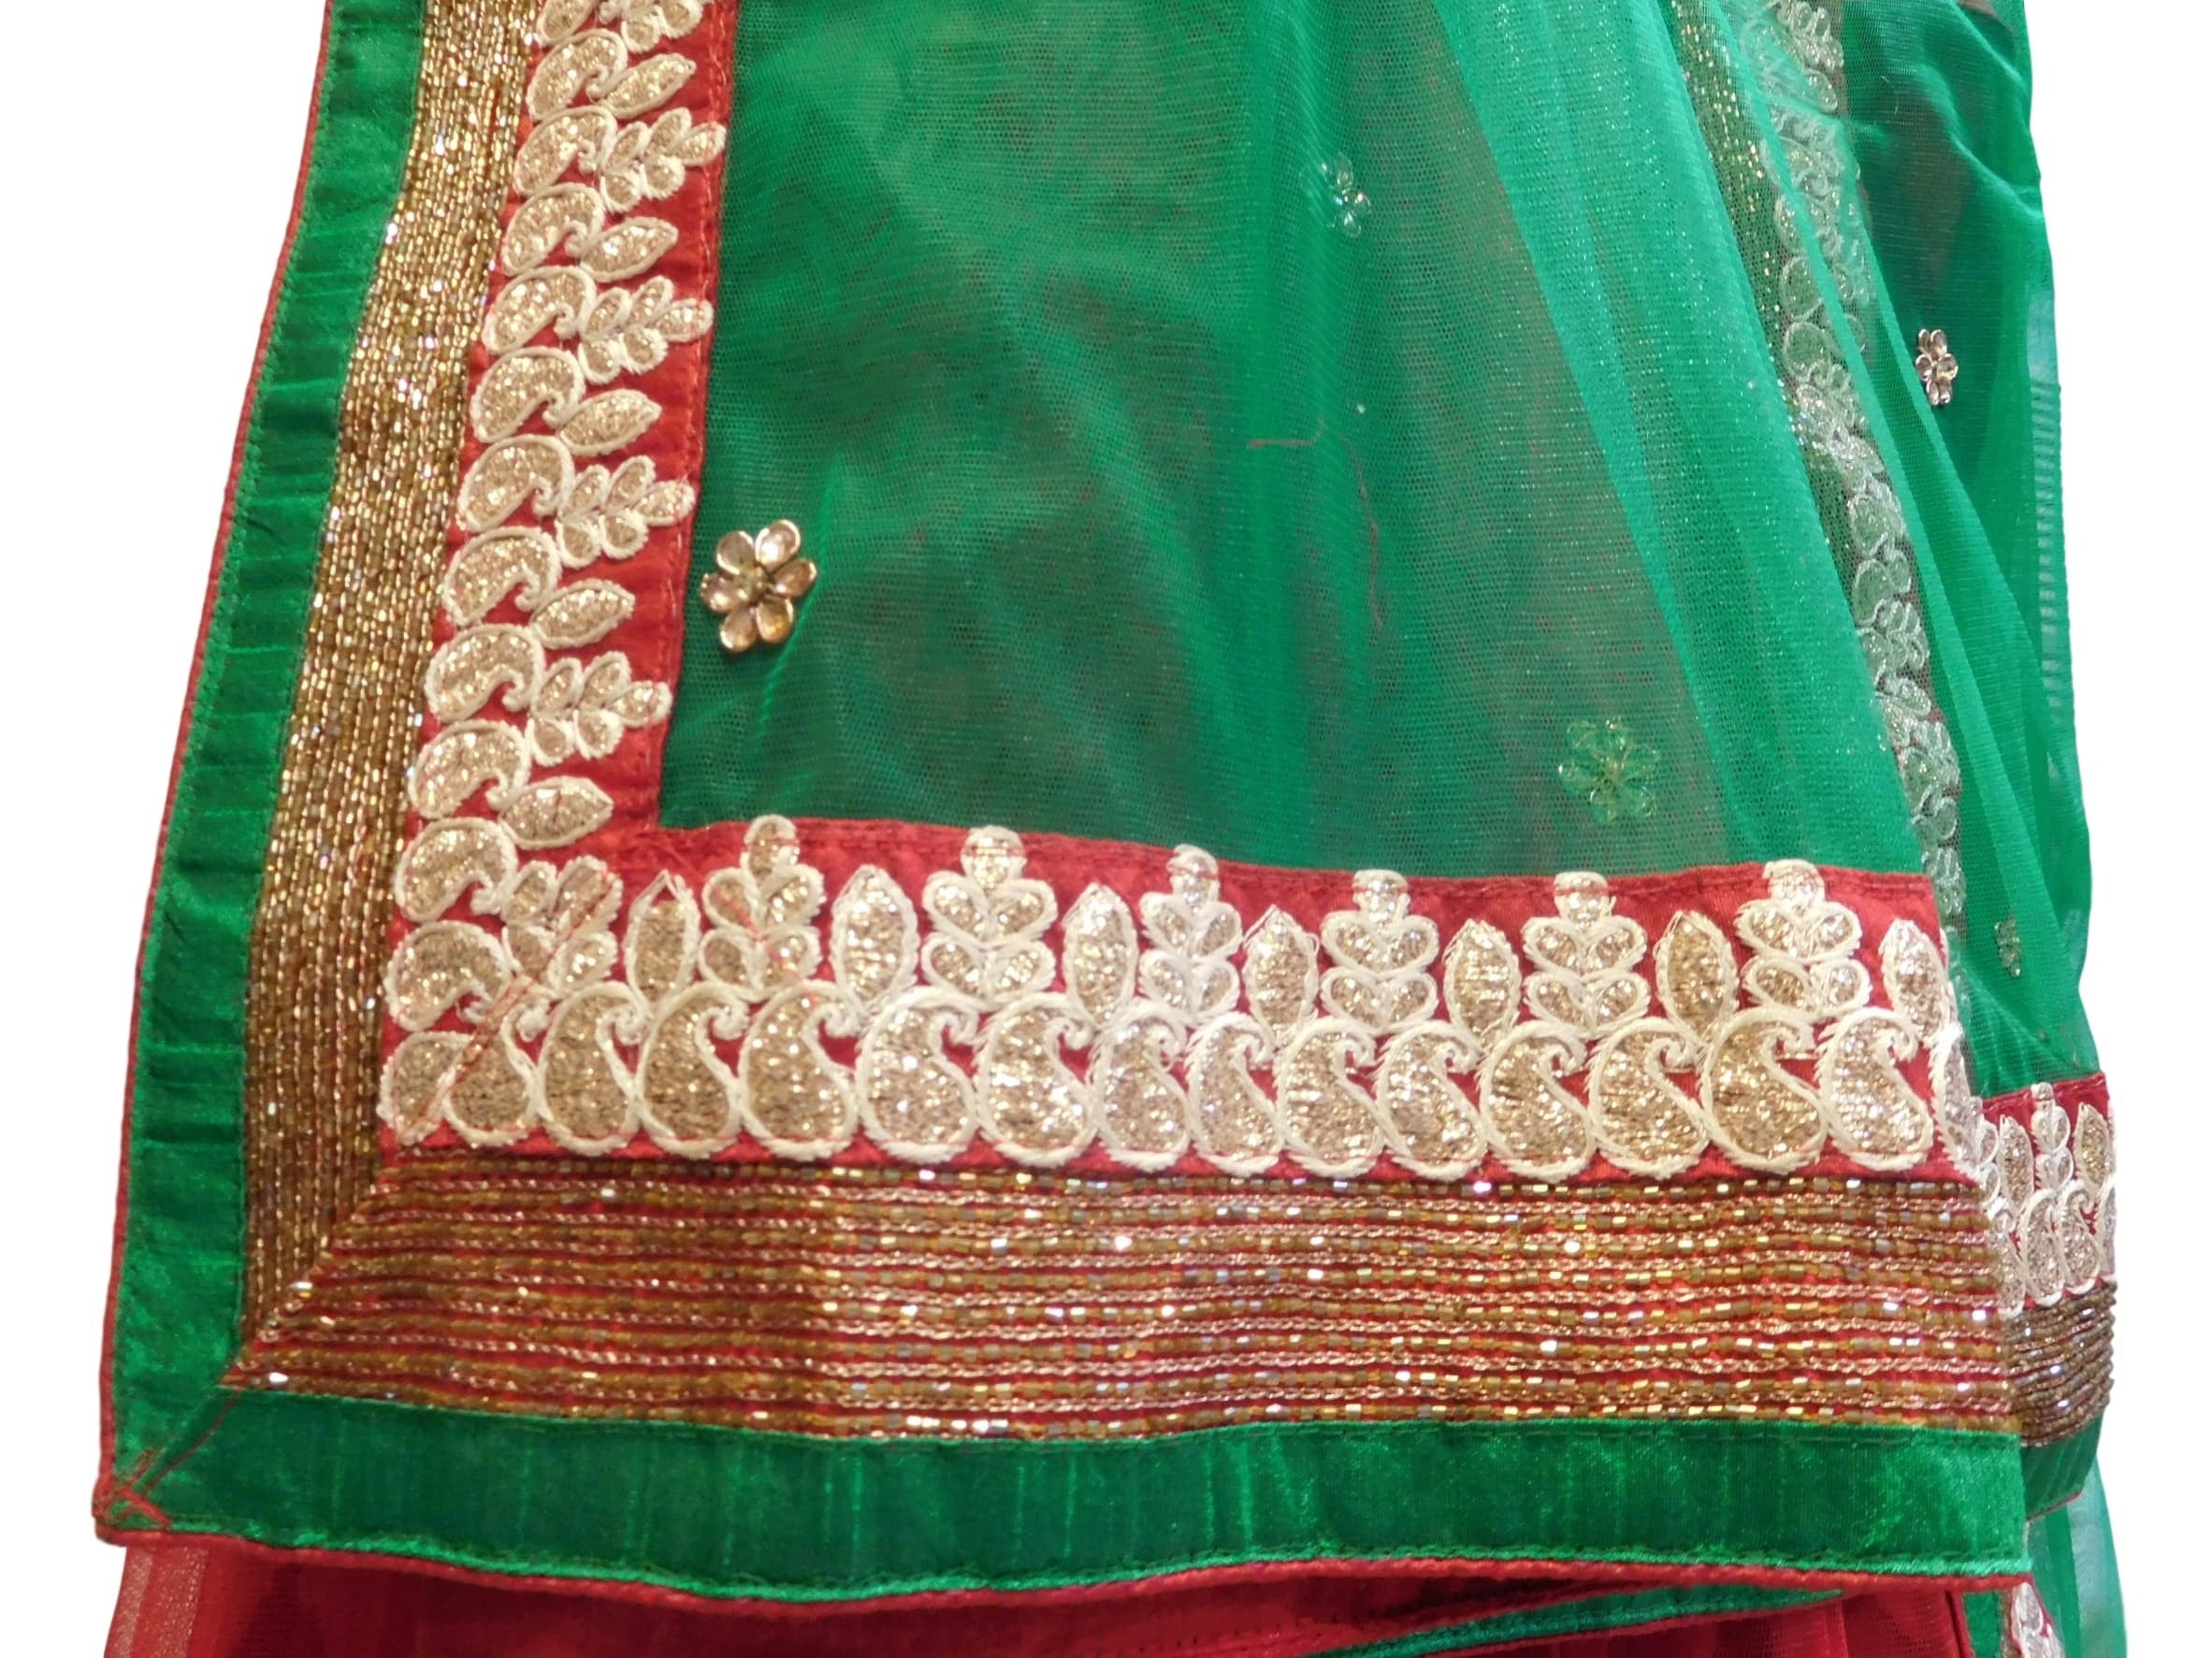 Red & Green Designer Bridal Hand Embroidery Work Lahenga With Net Dupatta & Silk Blouse